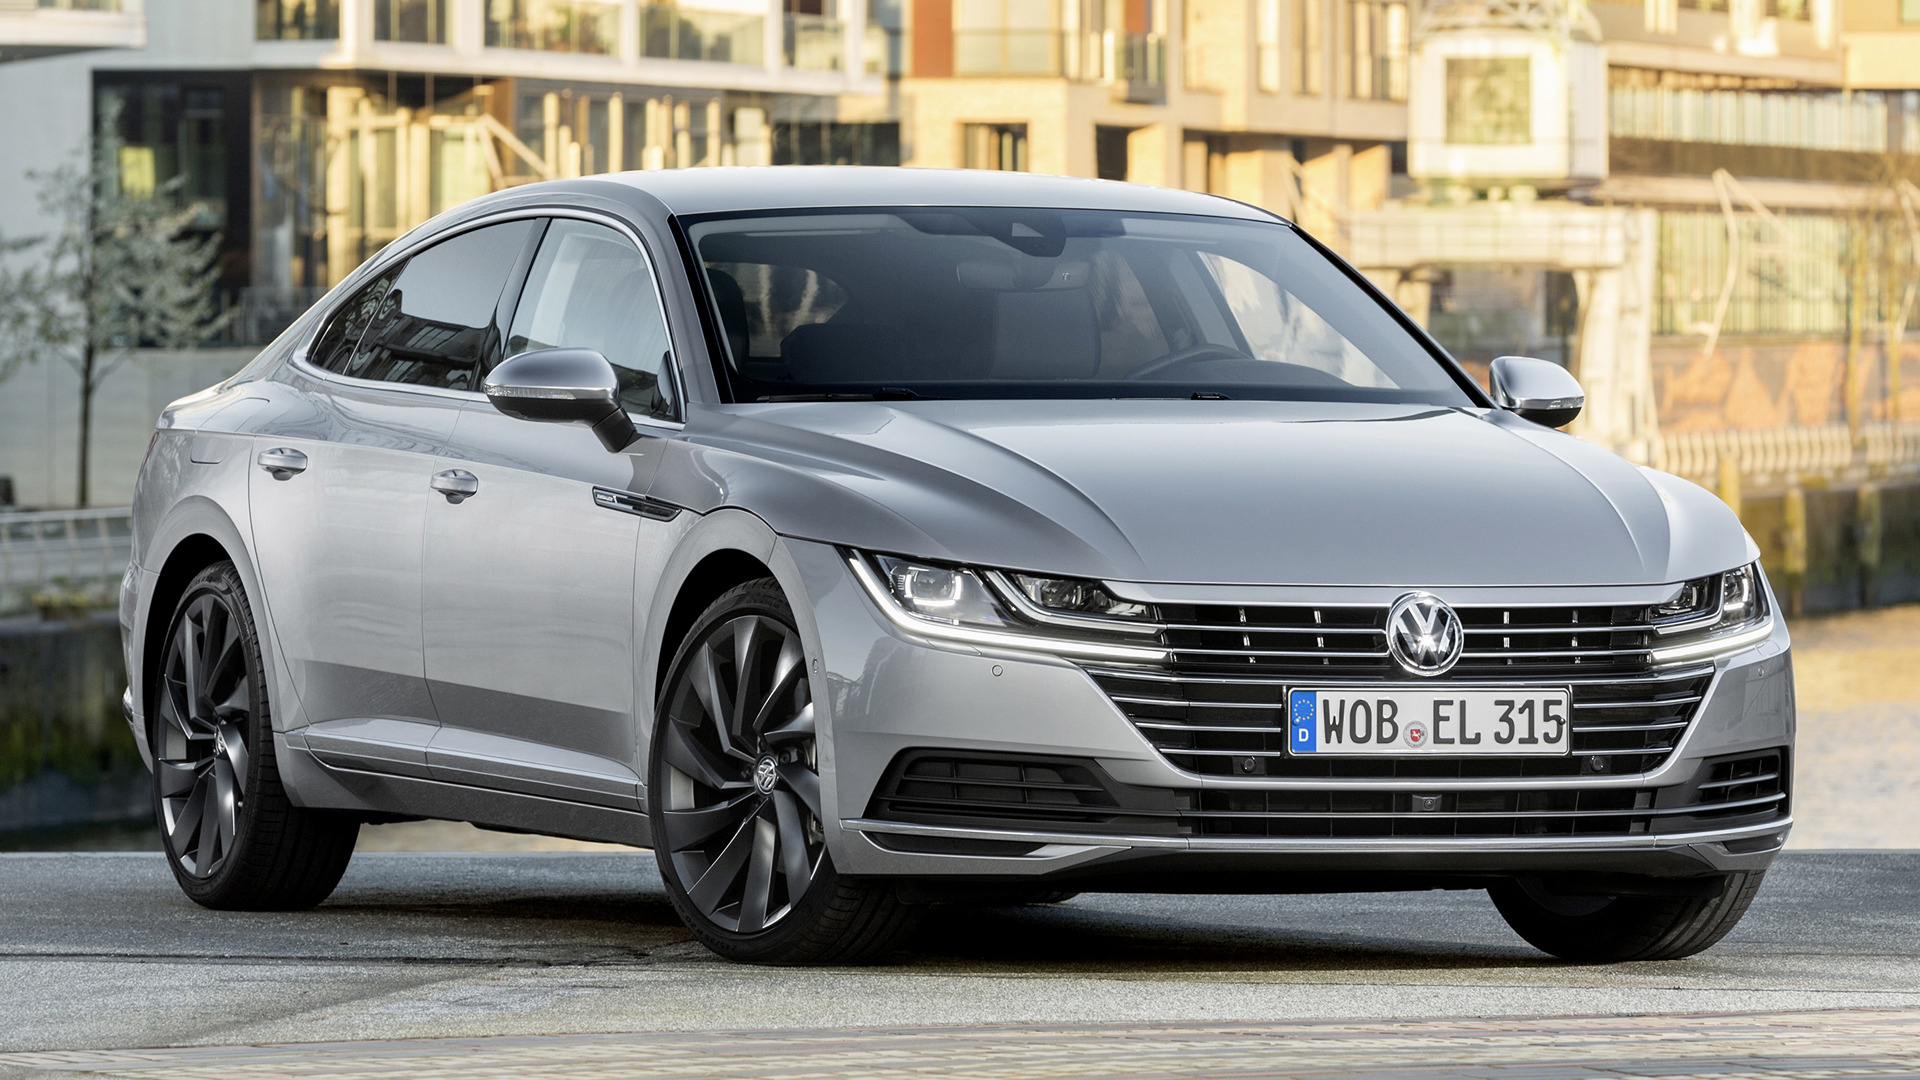 1920x1080 - Volkswagen Arteon Wallpapers 29